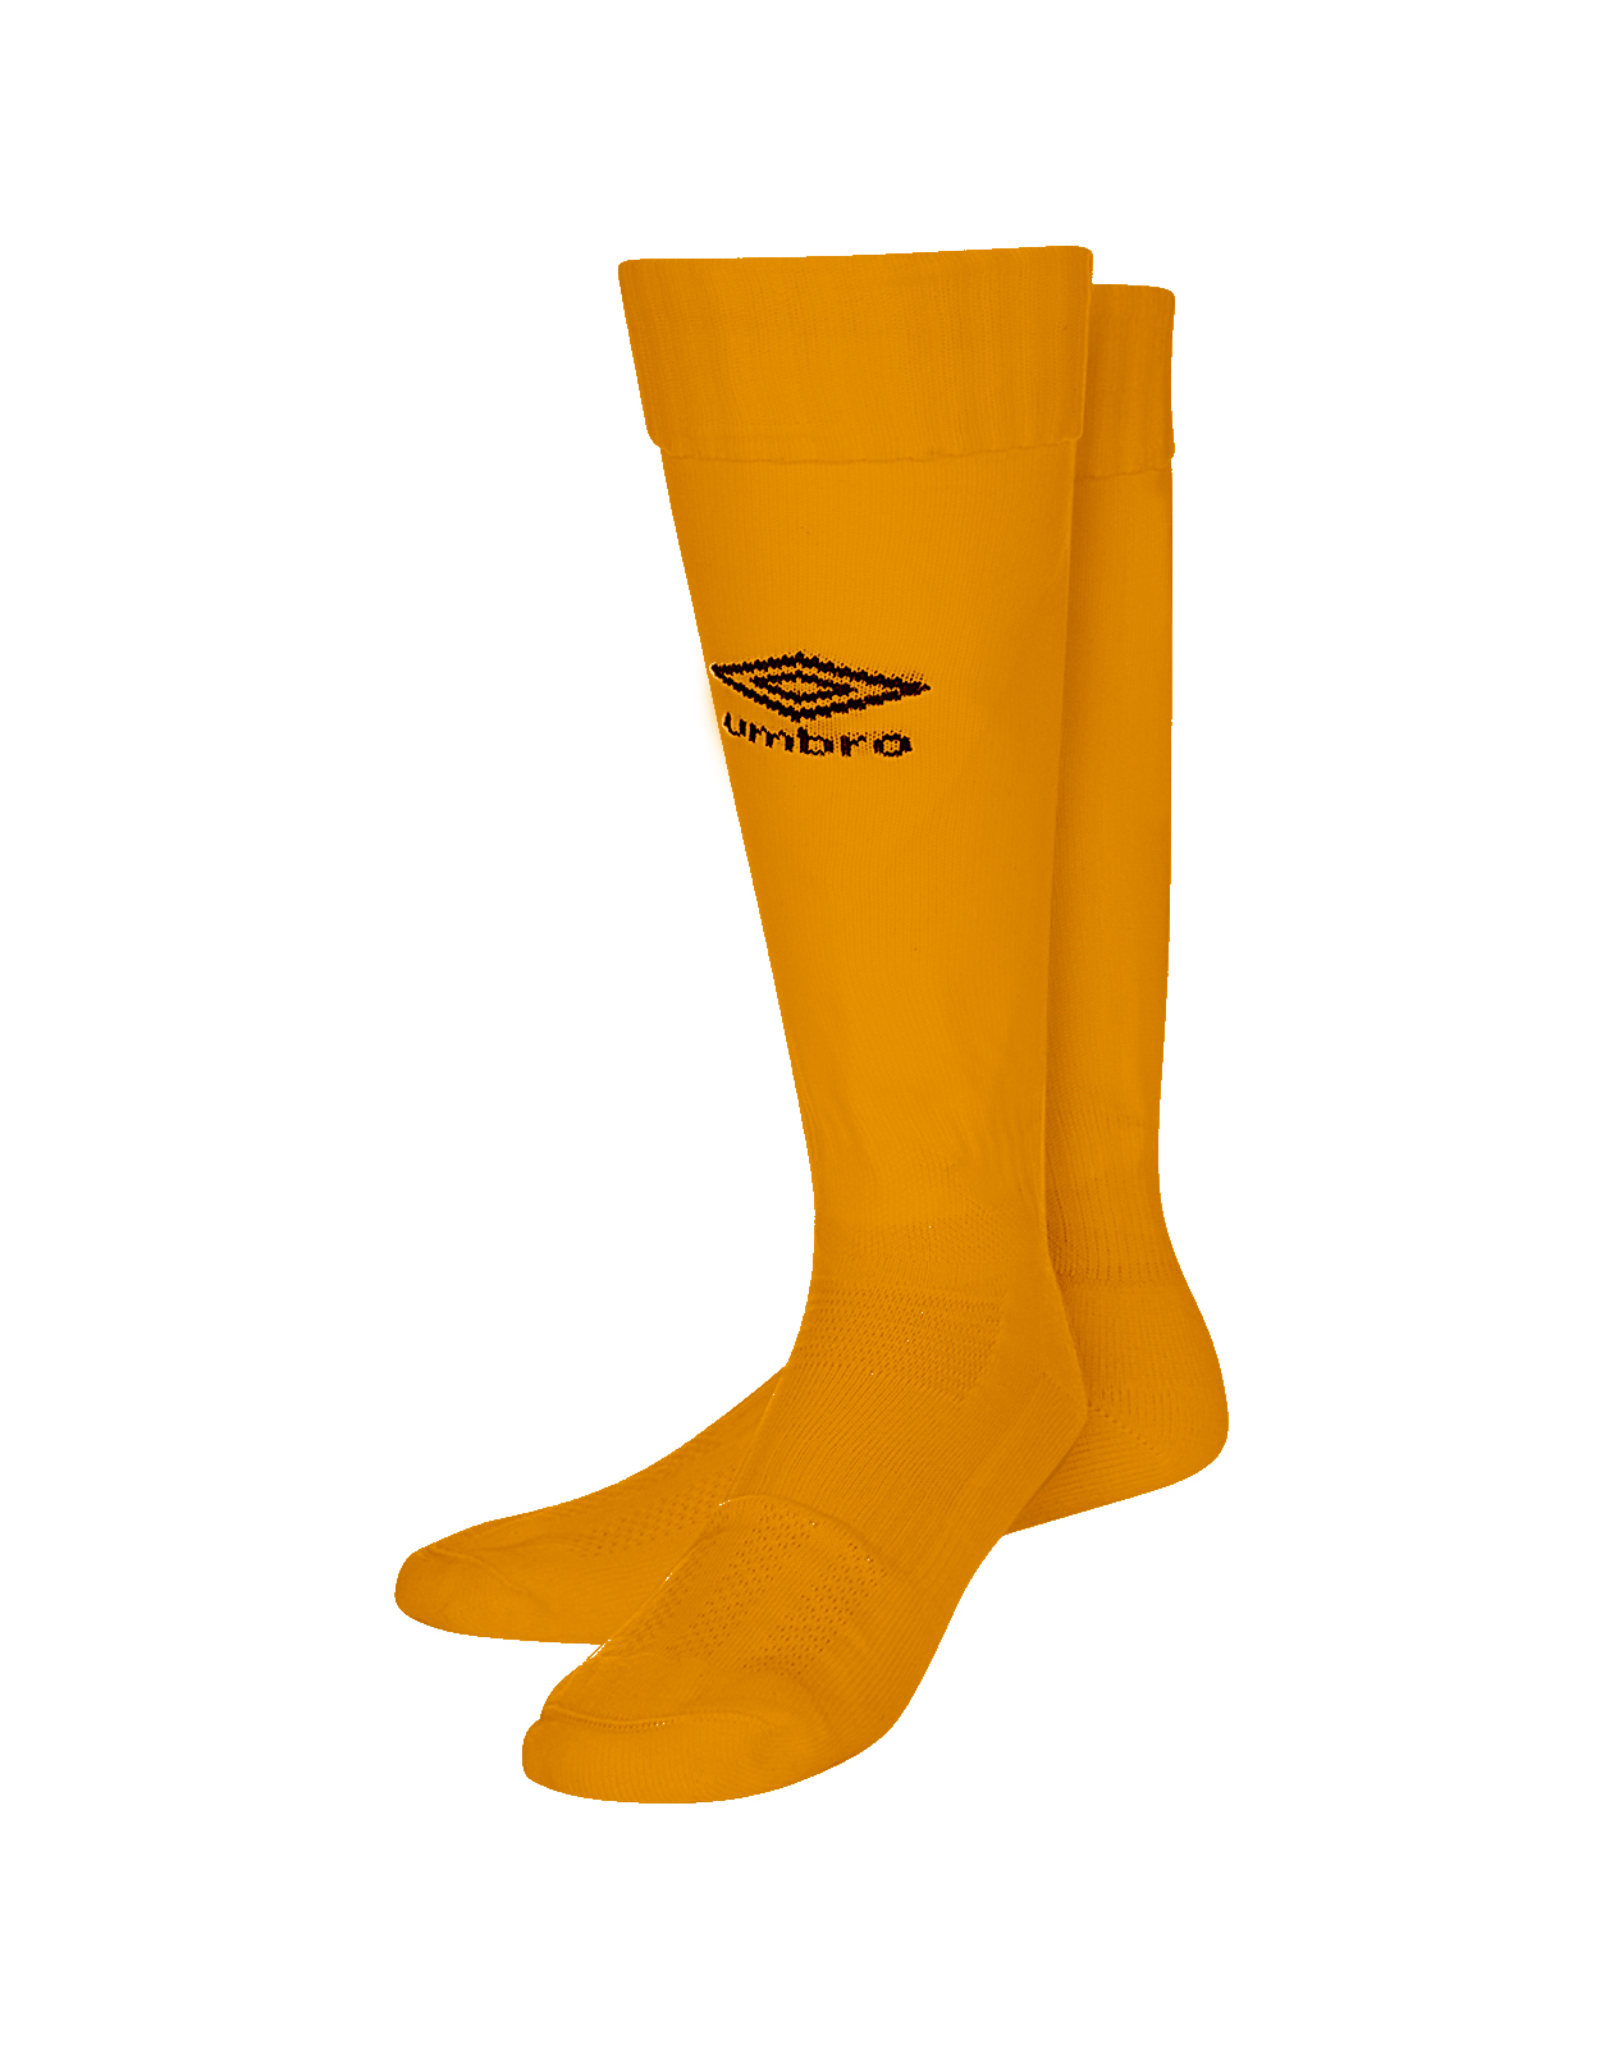 Umbro Classico football sock in amber with black Diamond logo on the front